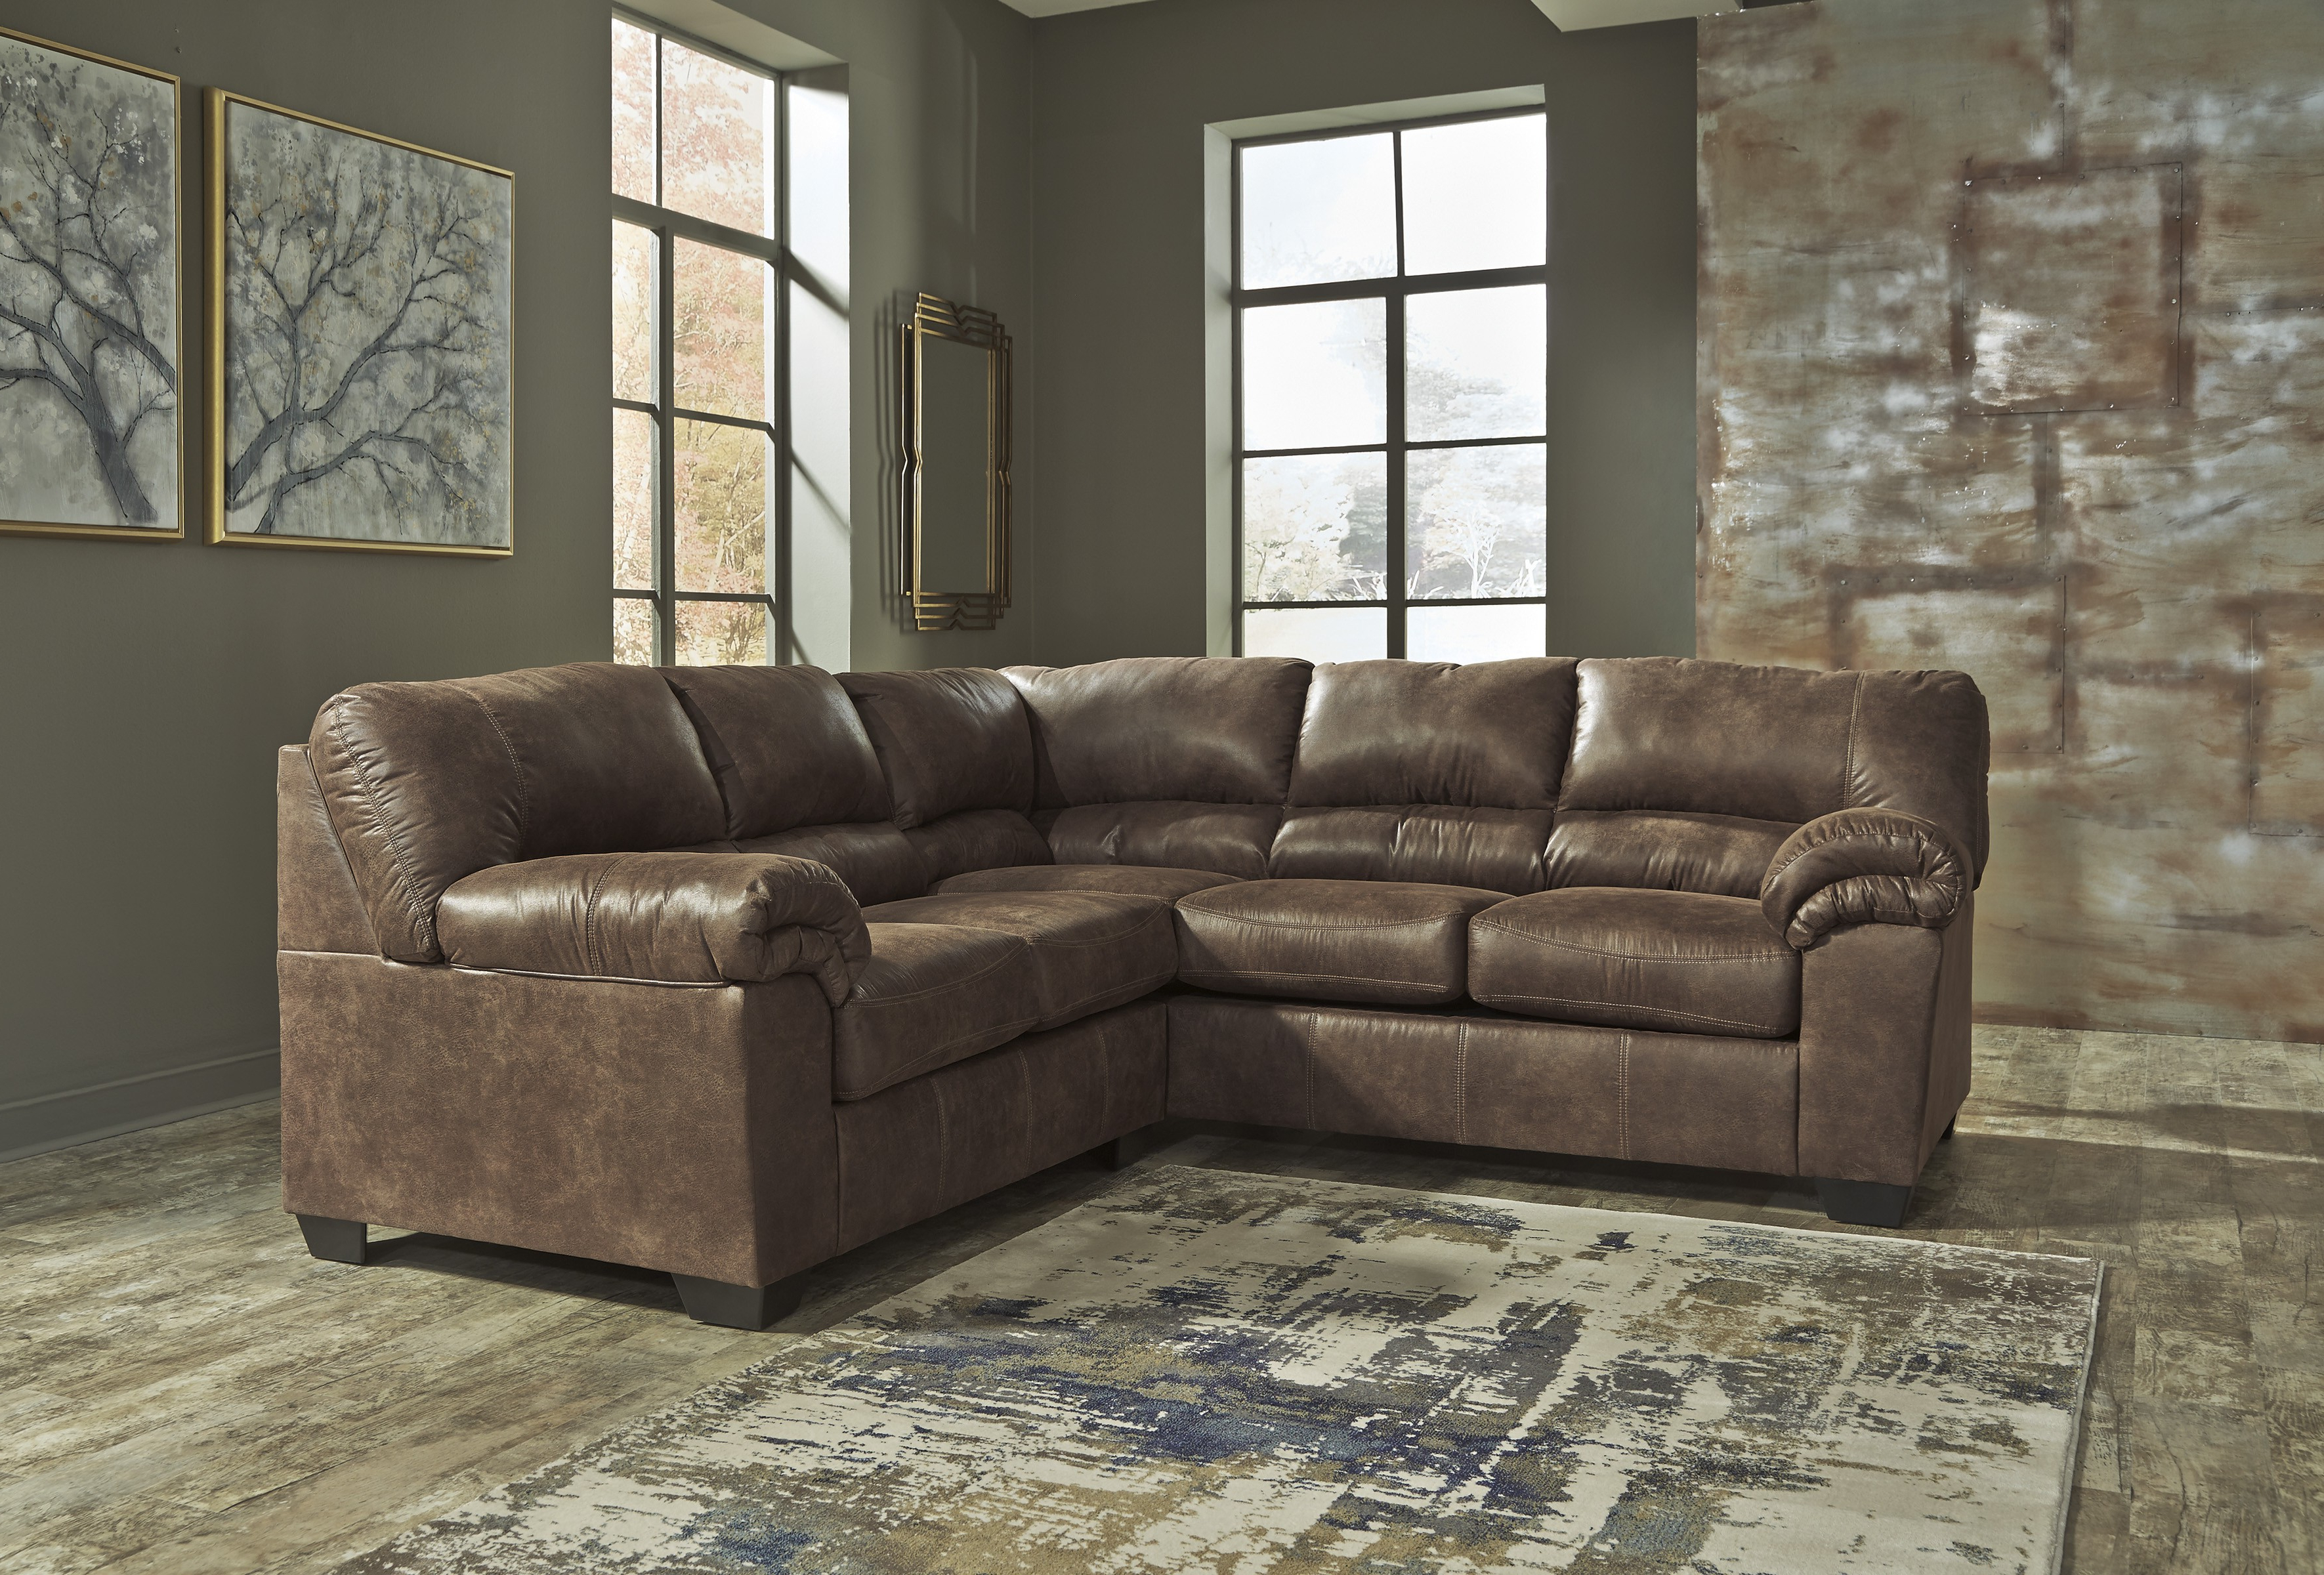 Baci Living Room Pertaining To Turdur 3 Piece Sectionals With Raf Loveseat (Gallery 4 of 20)